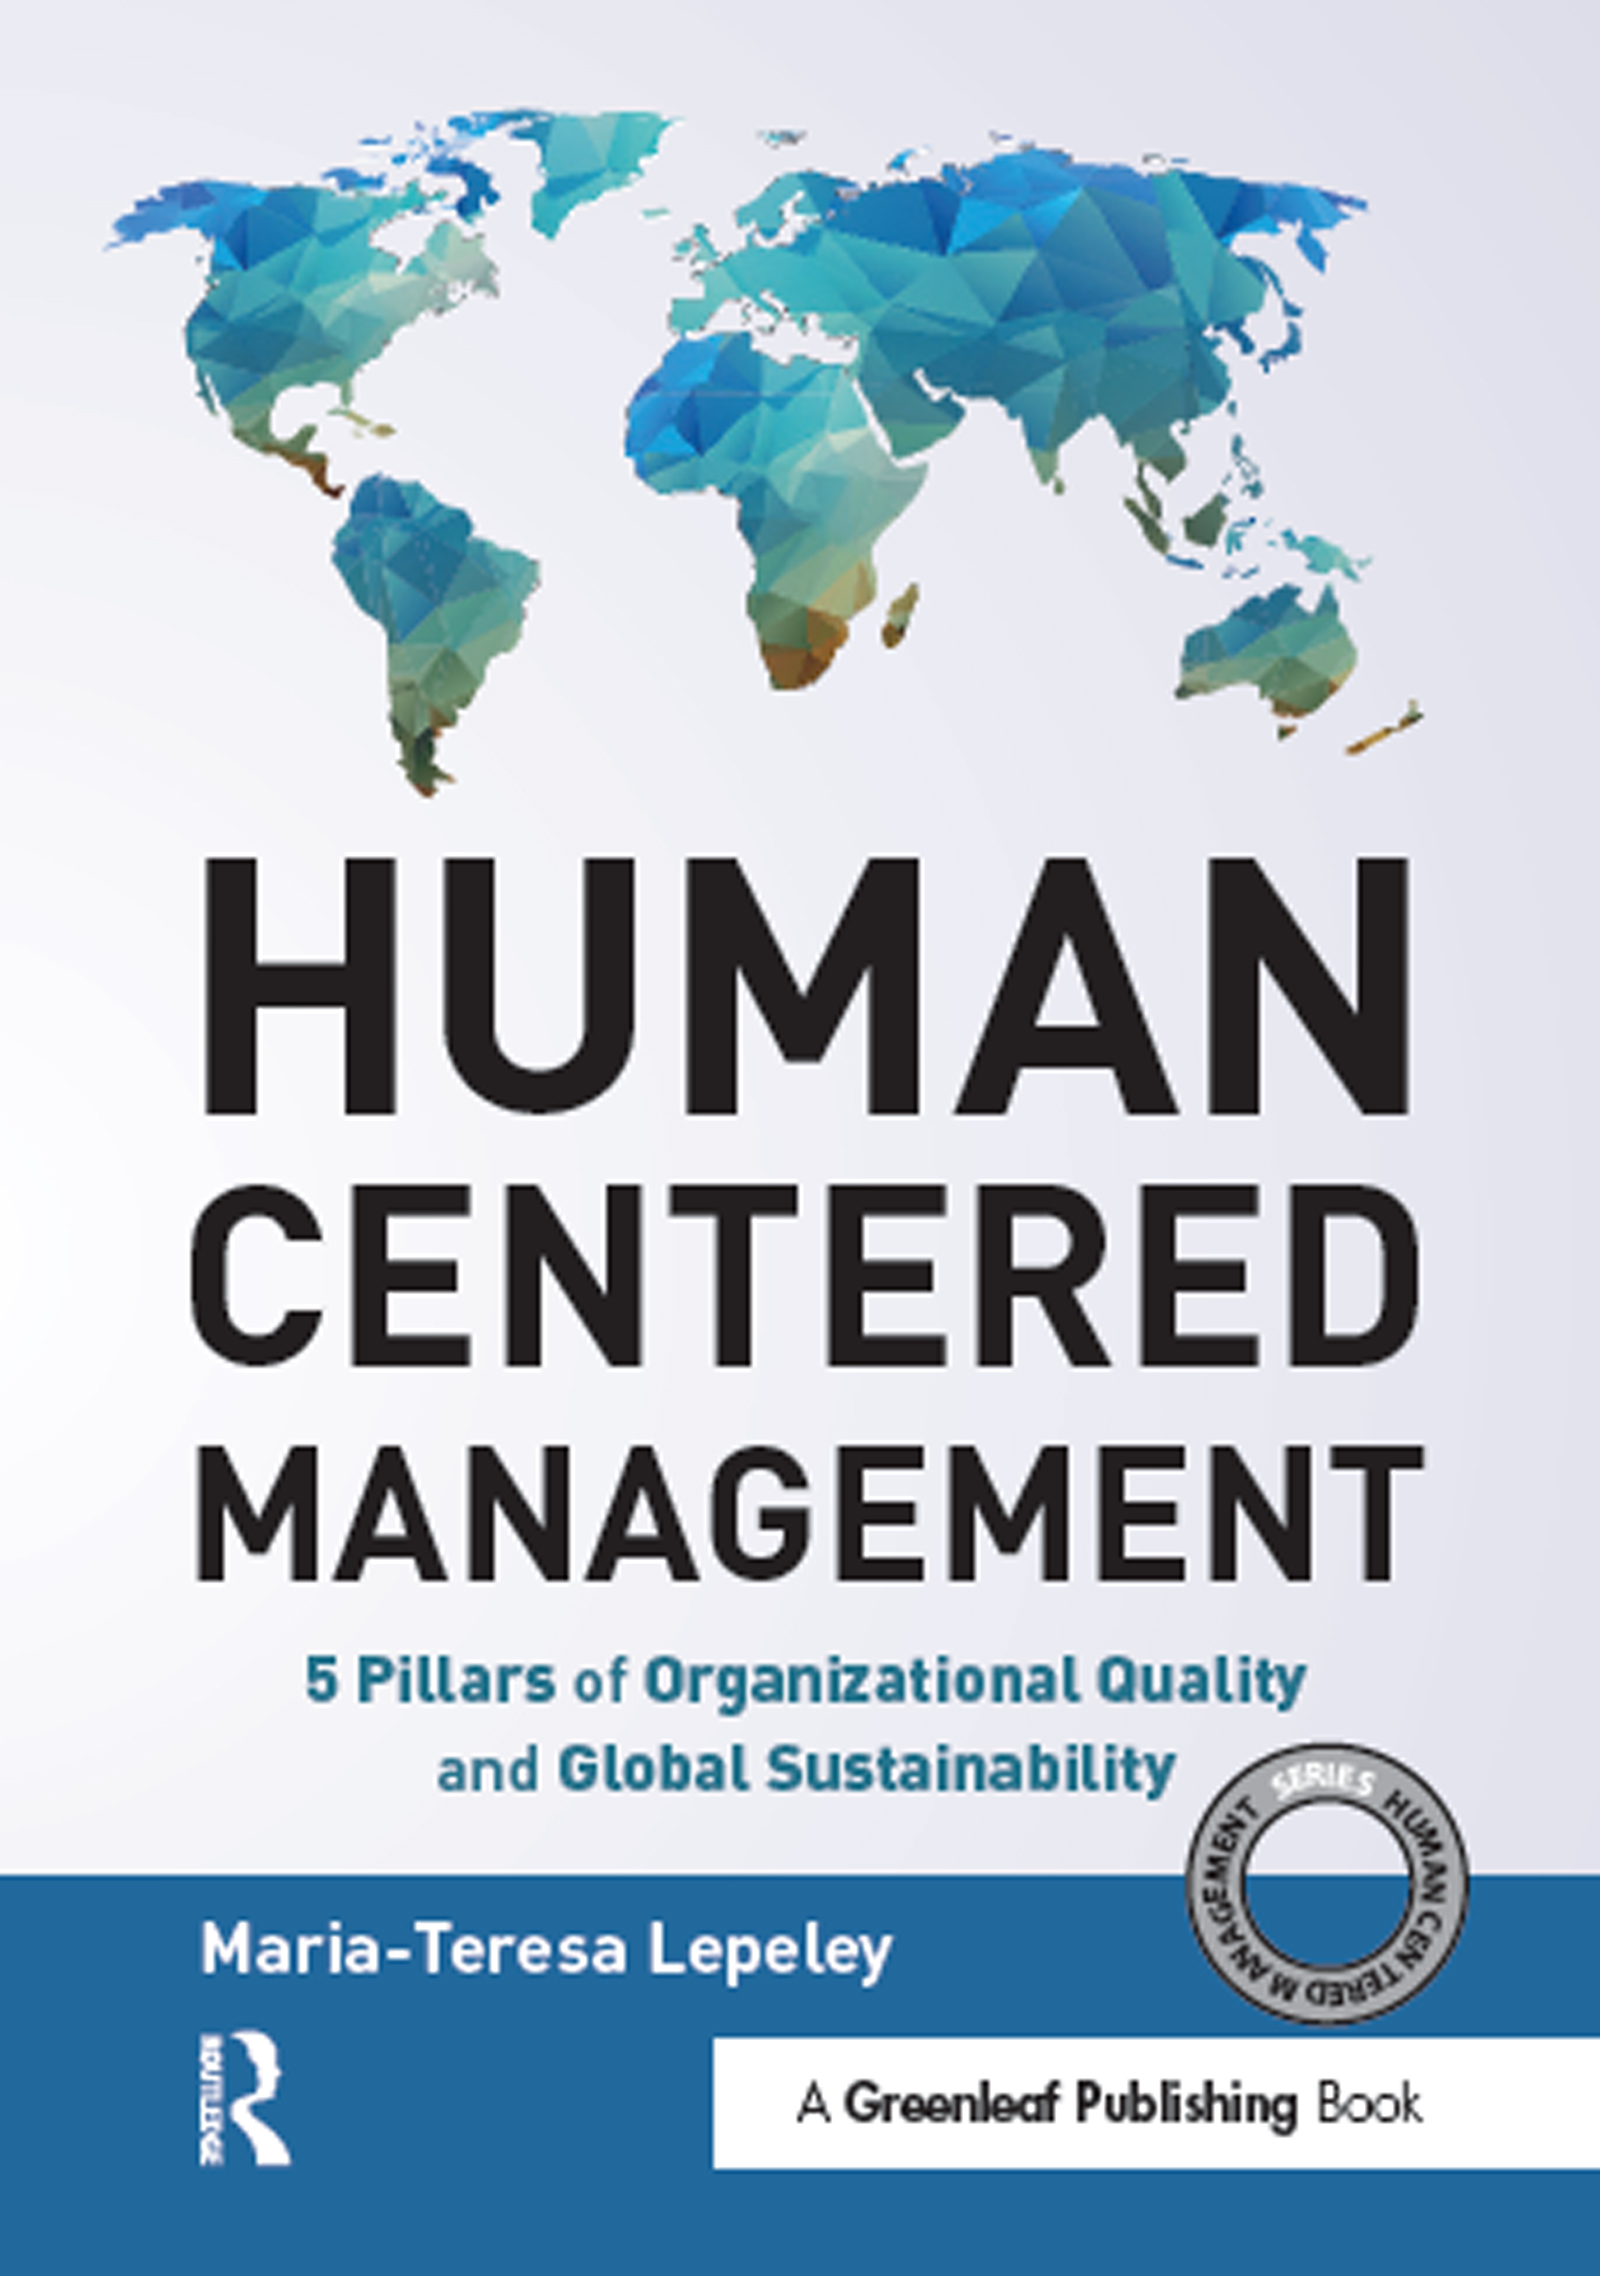 Human Centered Management: 5 Pillars of Organizational Quality and Global Sustainability book cover